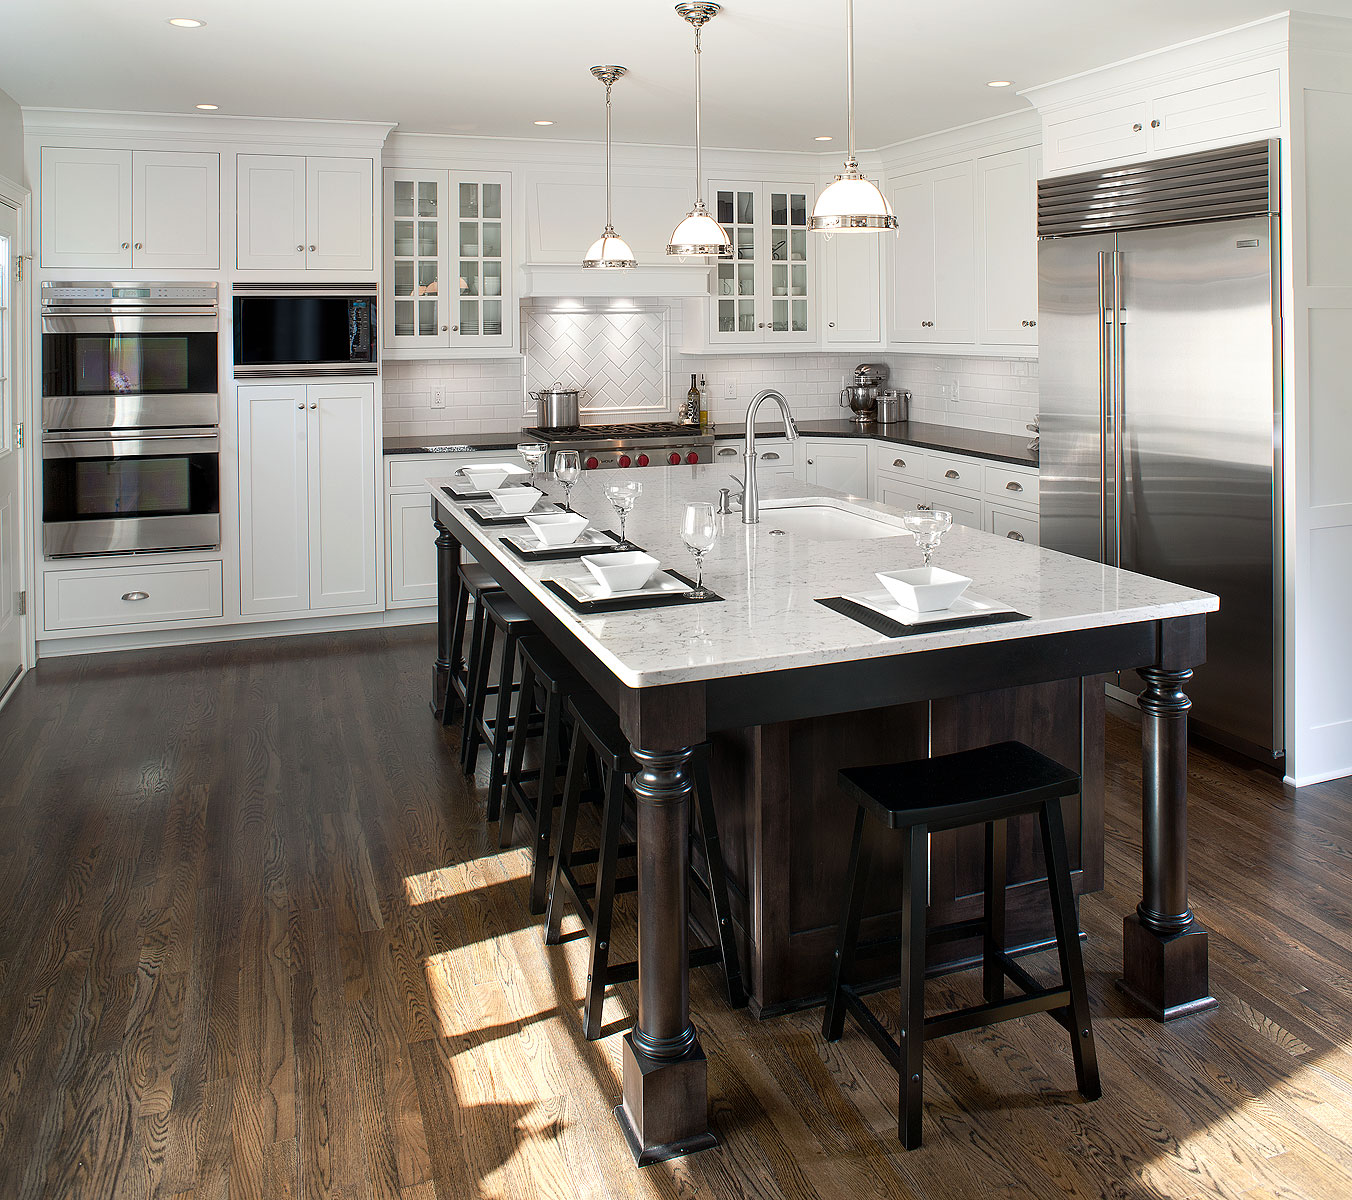 Transitional Kitchens With White Cabinets: White Transitional Kitchen